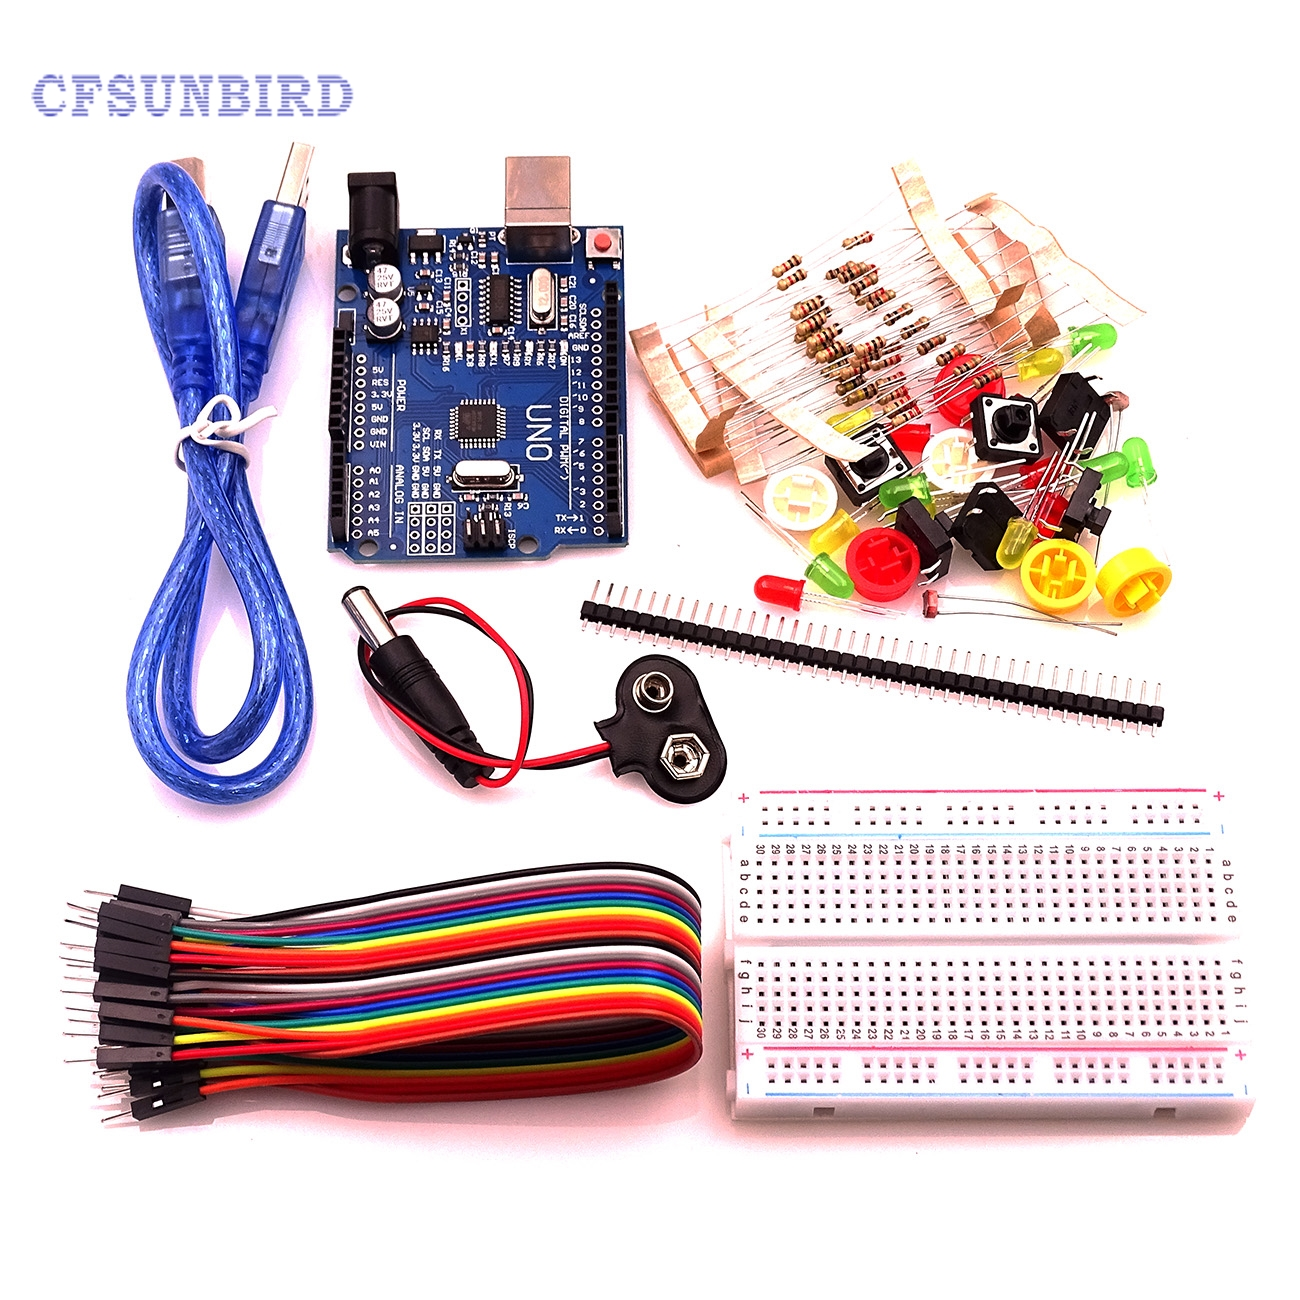 1 Set new Starter Kit UNO R3 mini Breadboard LED jumper wire button for Arduin compatile frree shipping top selling high qualiy uno r3 starter kit 1602 lcd dot matrix breadboard led resistor hot selling